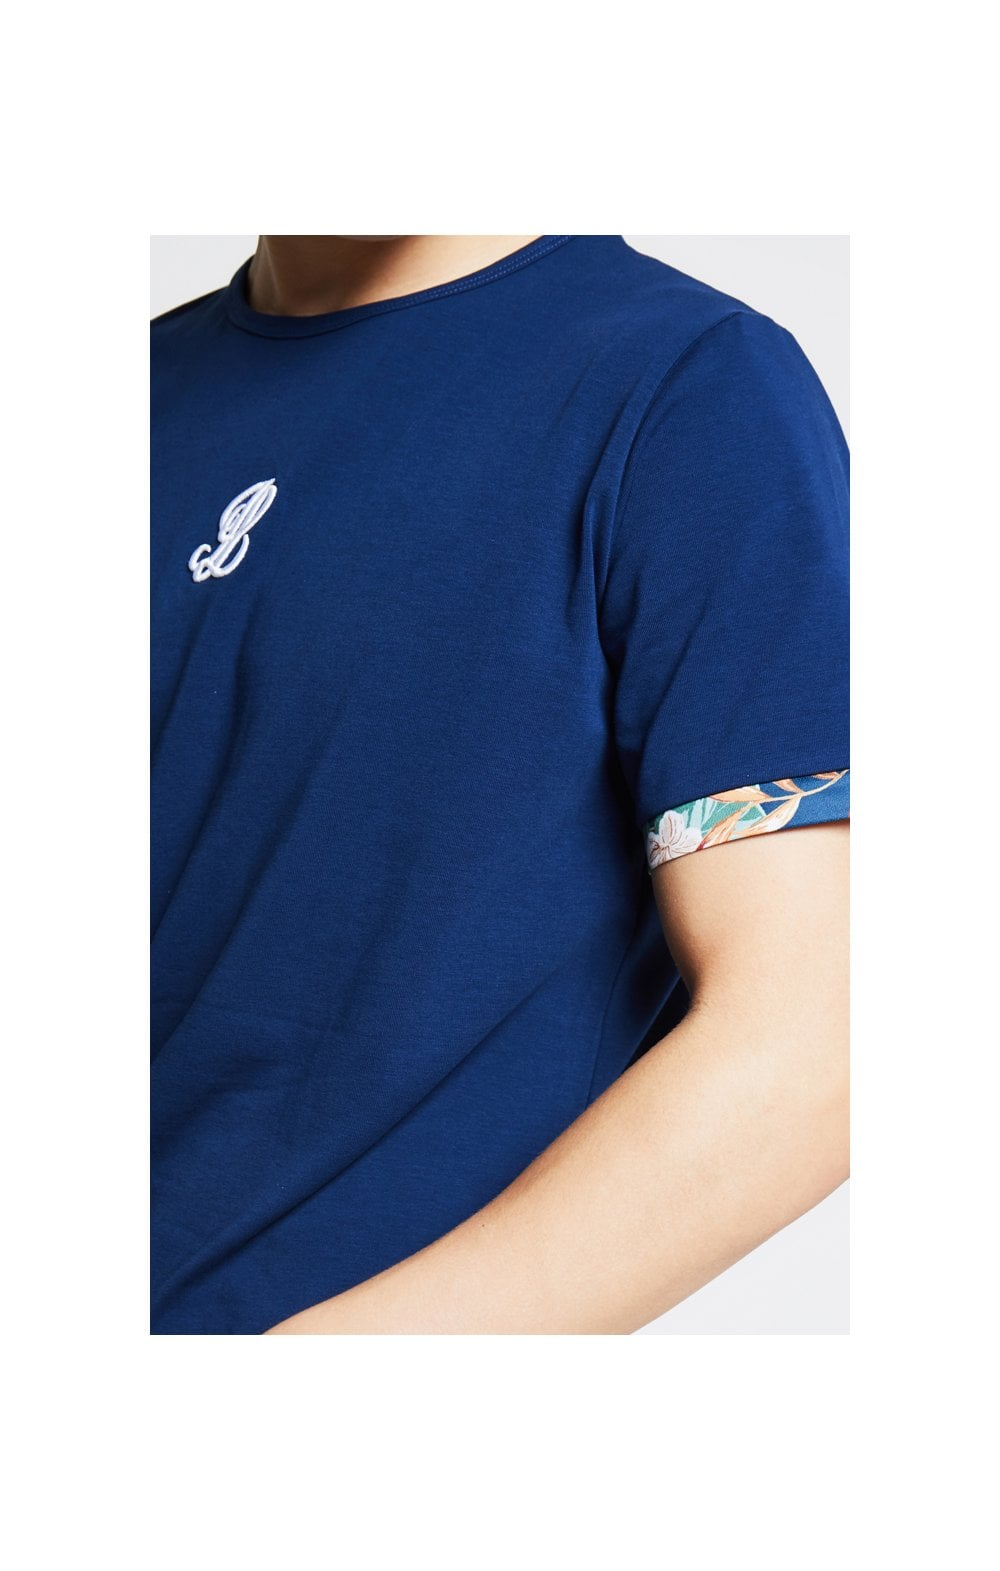 Illusive London T-Shirt Con Polsini A Contrasto Verde Acqua & Tropicale Leaf (1)